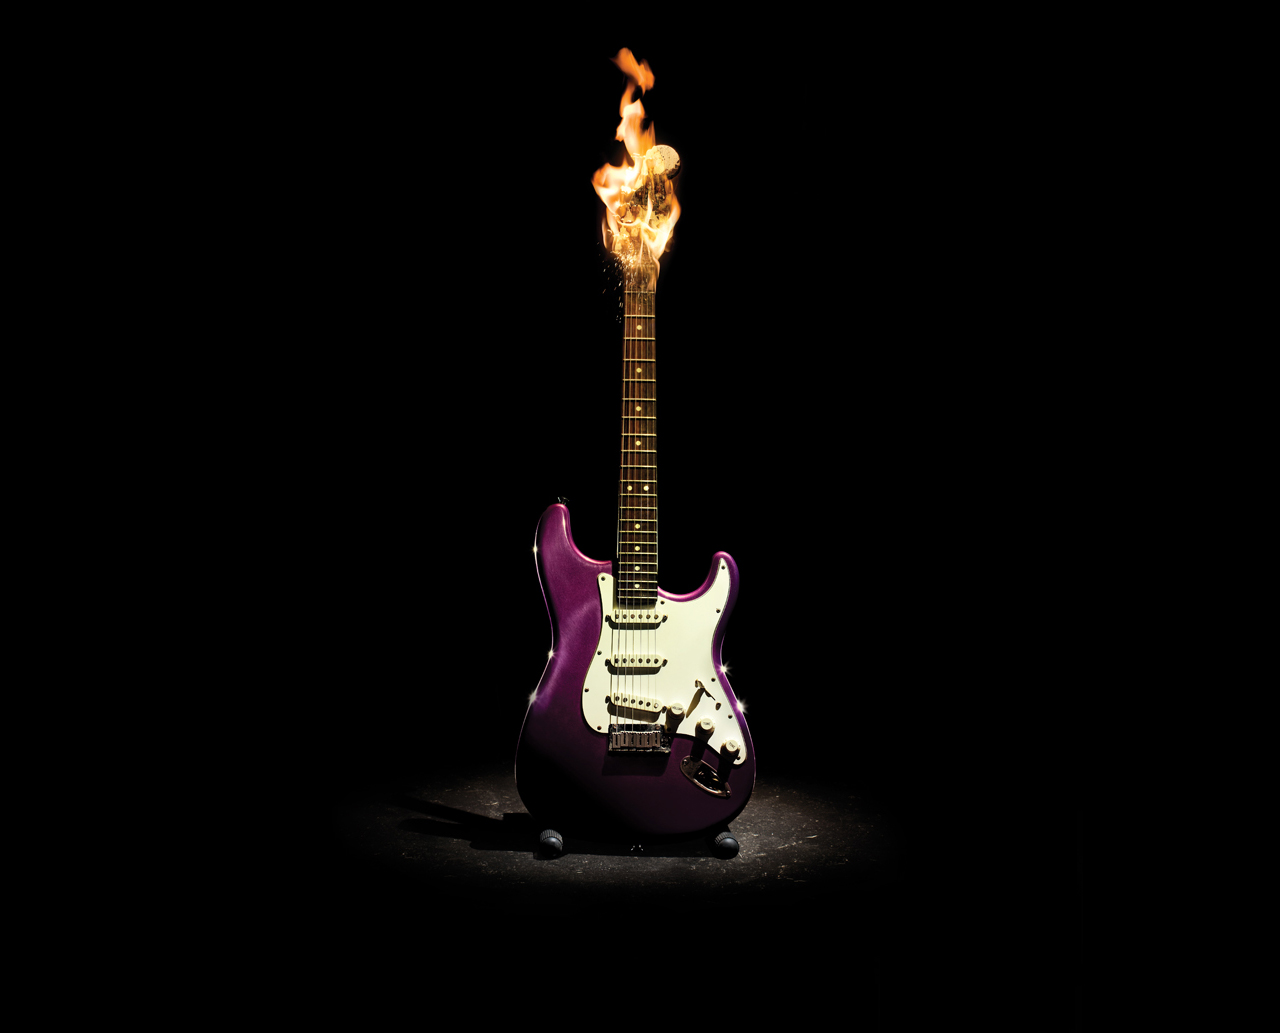 Awesome Quotes Wallpapers Free Download Awesome Guitar Wallpapers Stunning Mesh